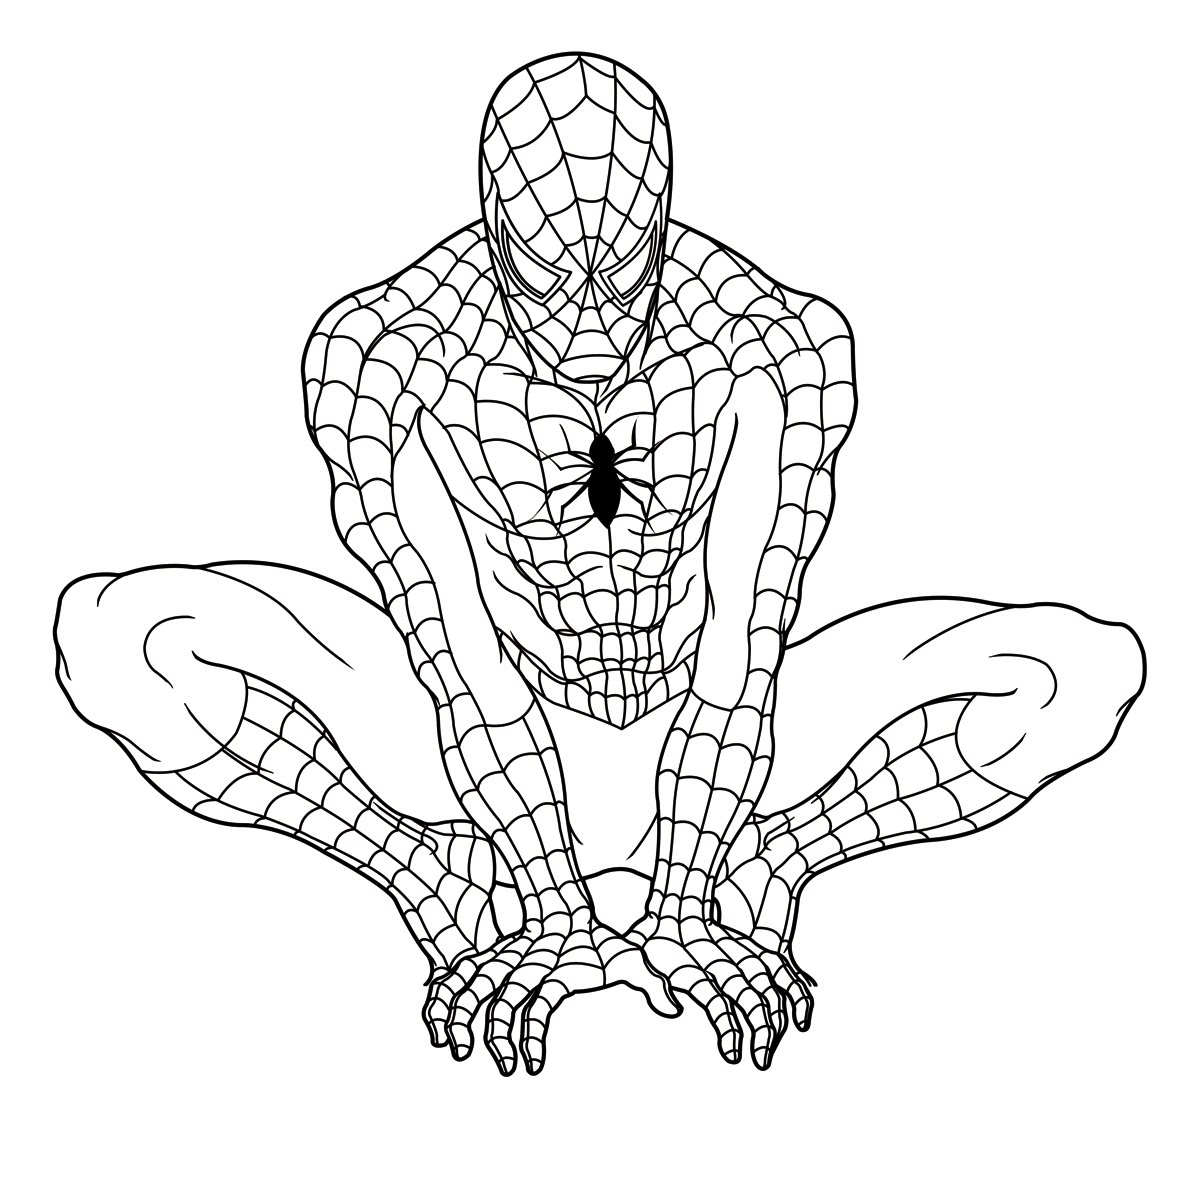 Free Printable Spiderman Coloring Pages for Kids Printable Of Superheroes Printable Coloring Pages Gidiyedformapolitica Download